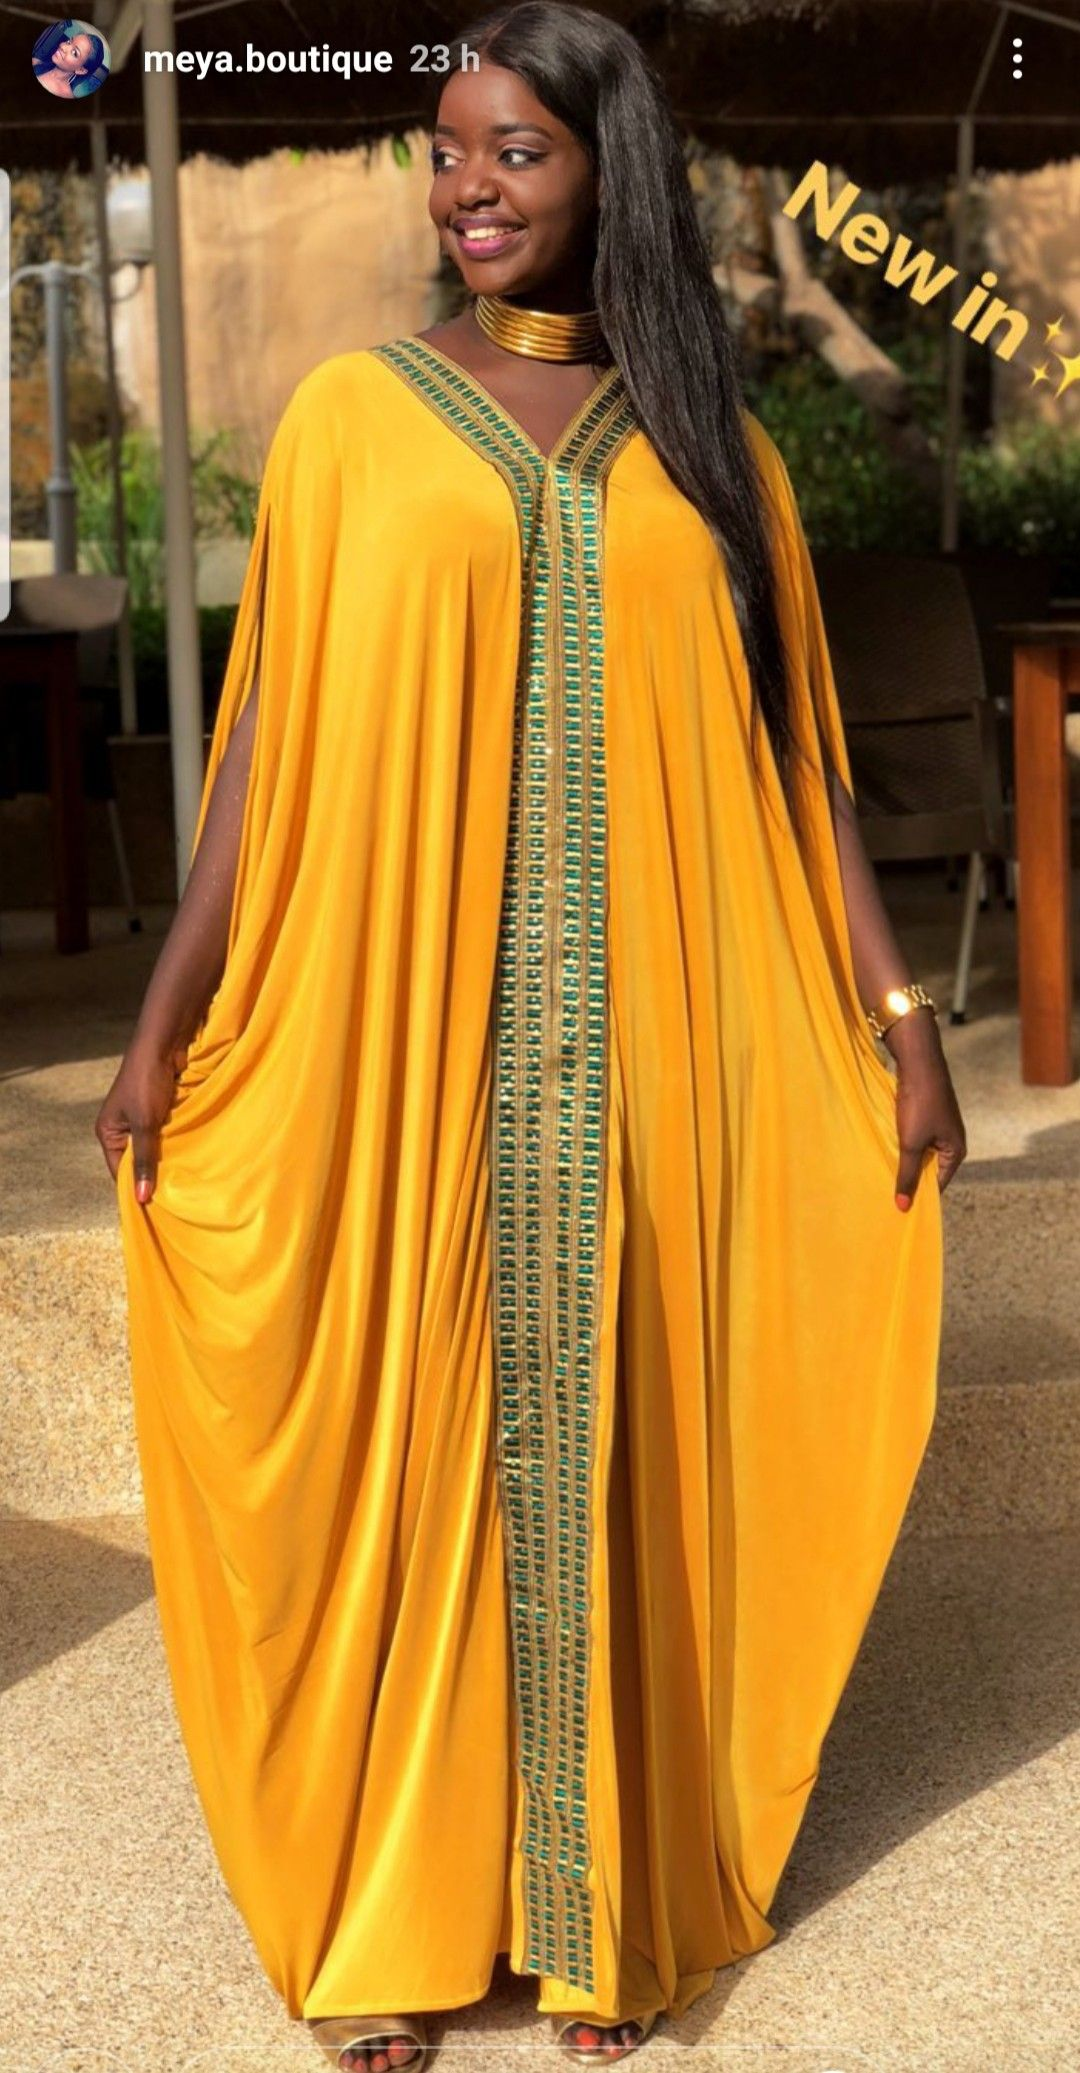 Bazin-pagne | Mode africaine robe longue